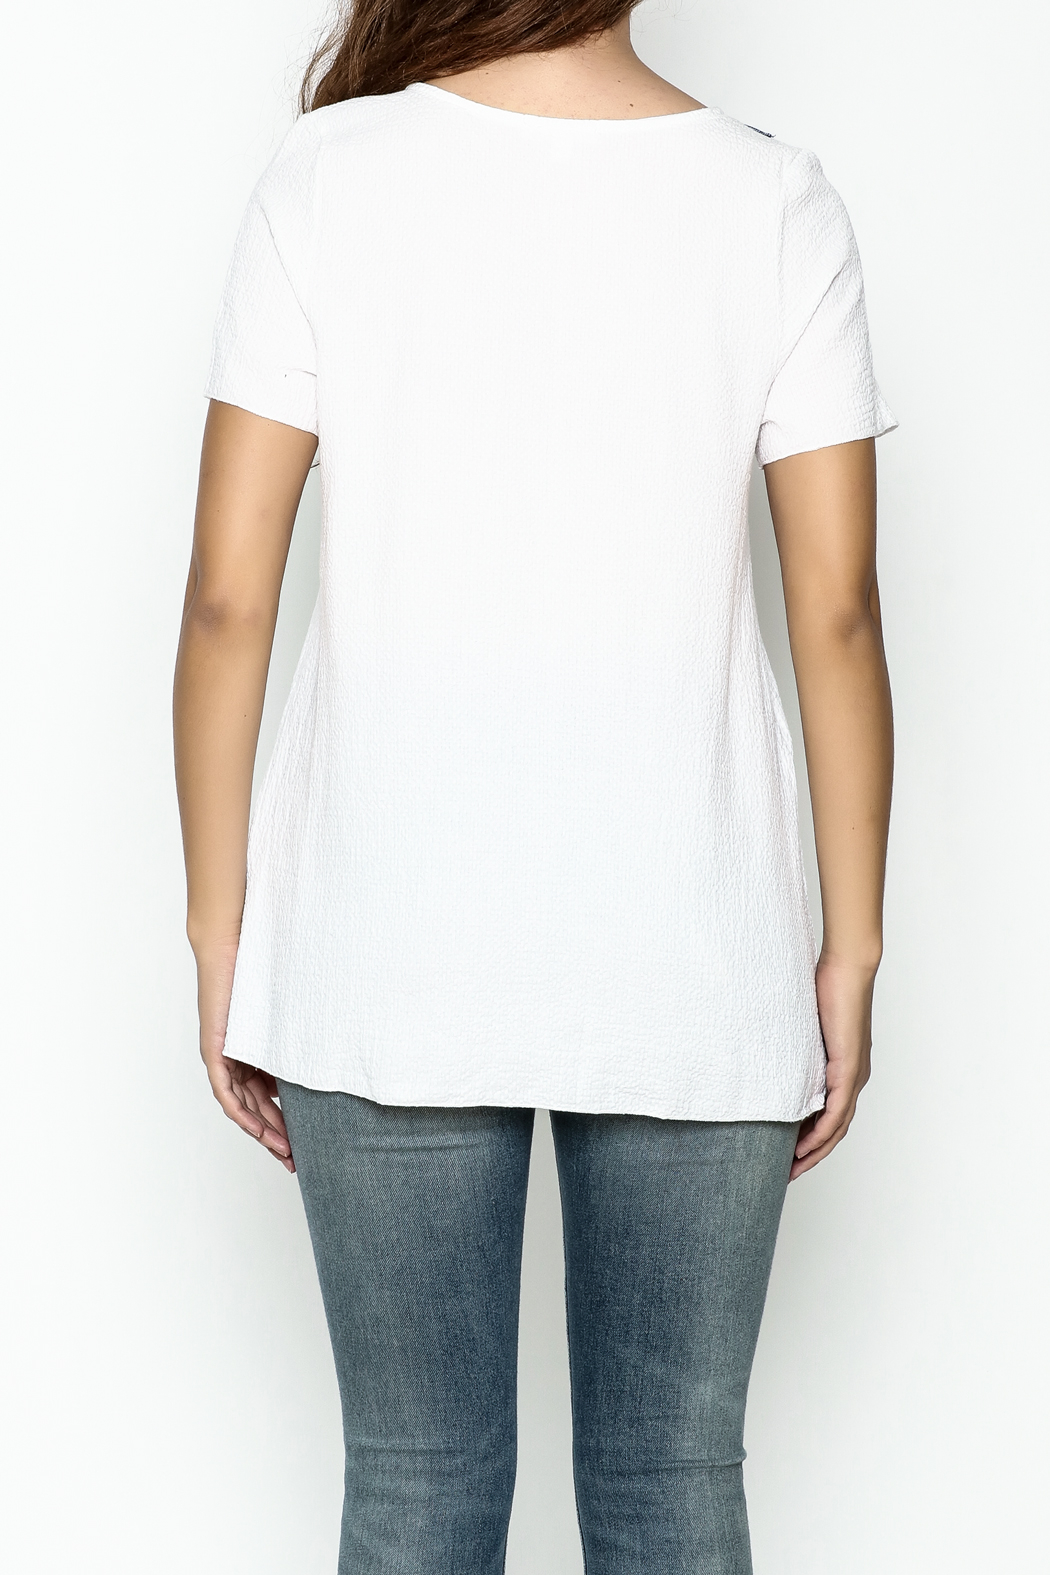 Hailey & Co. Boho Embroidered Top - Back Cropped Image